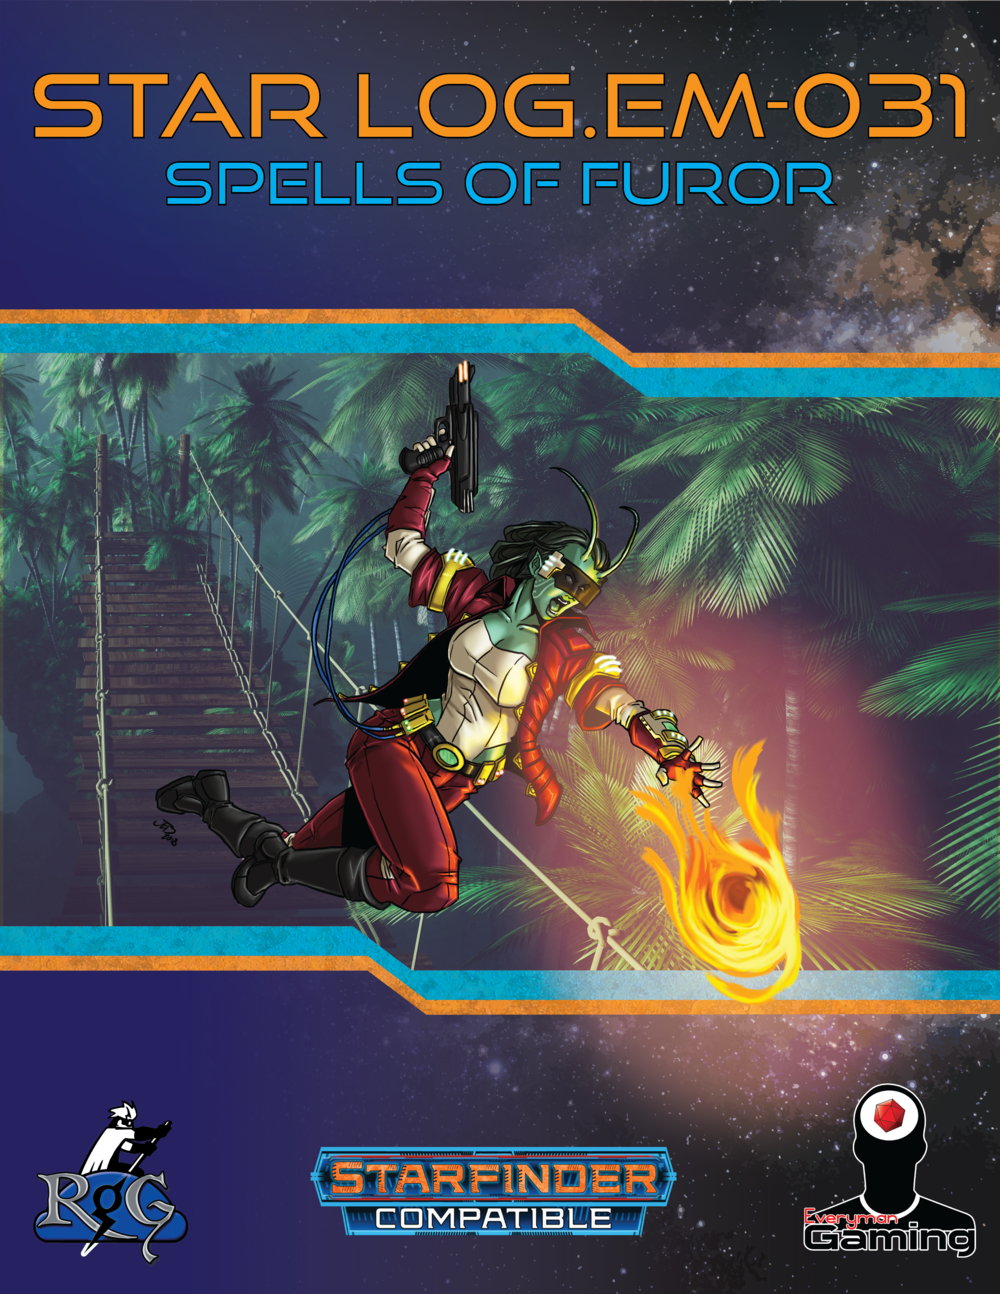 SF031_Spells of Furor.png